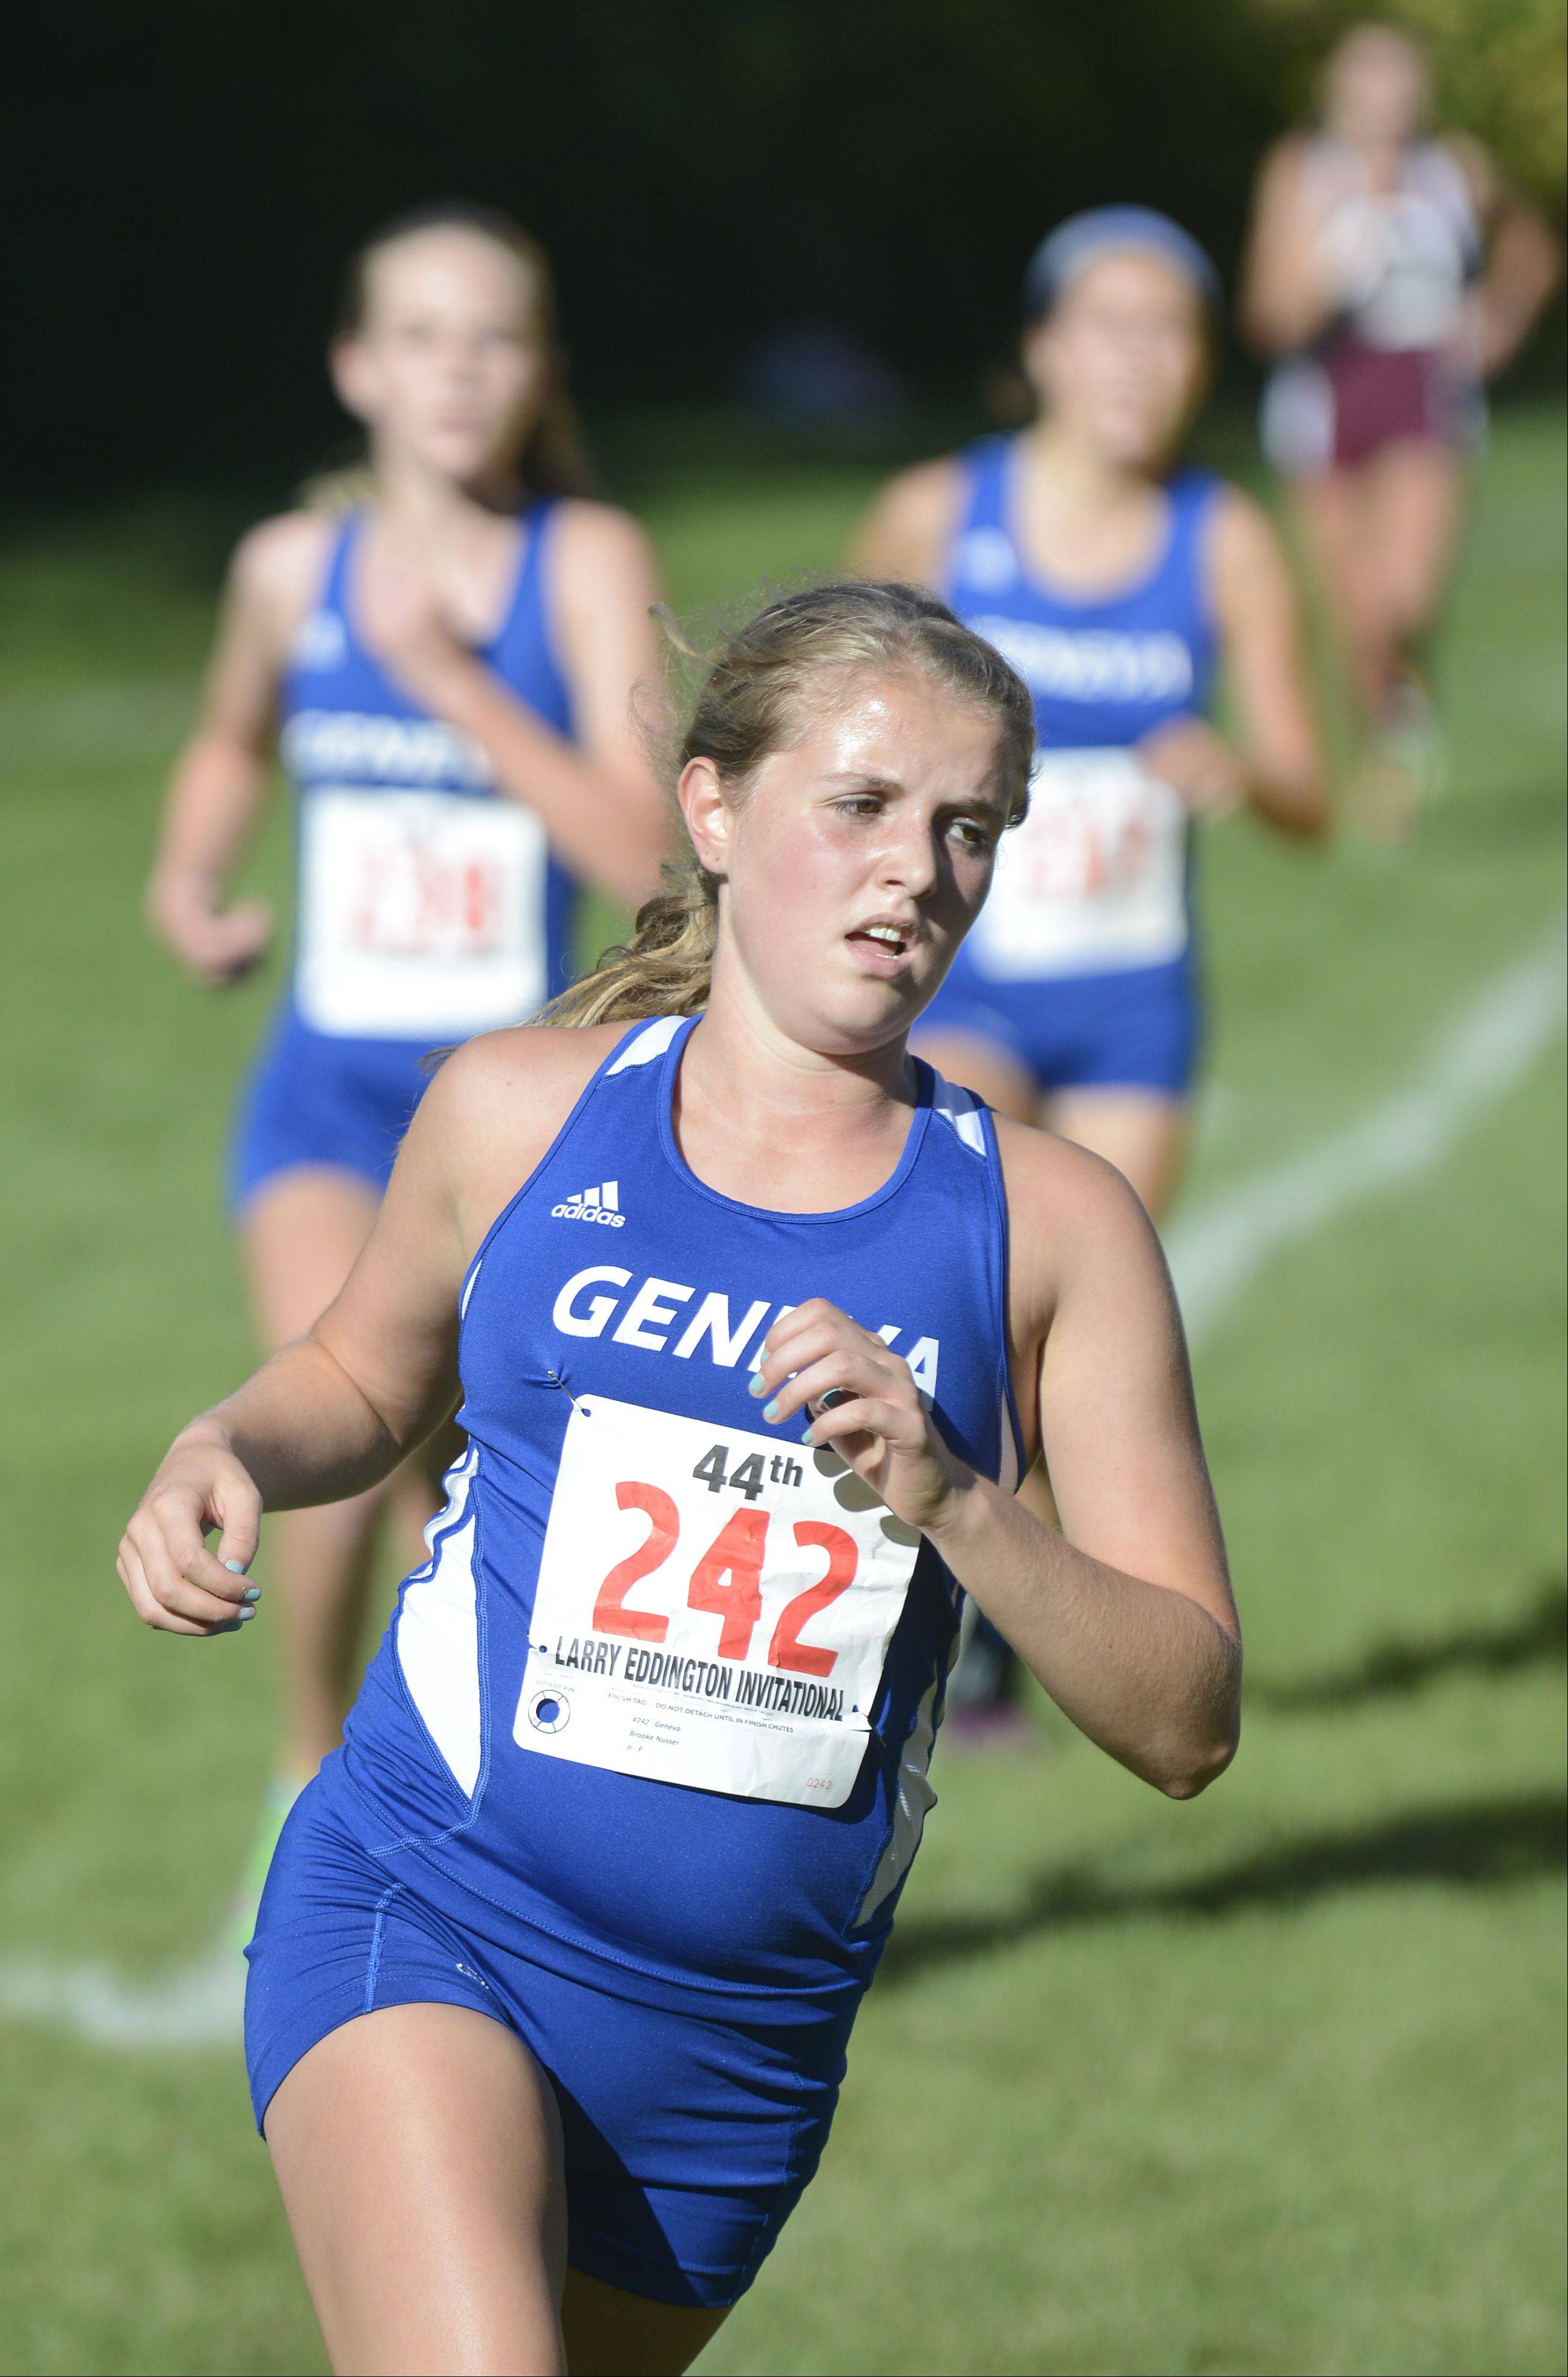 Geneva's Brooke Nusser leads teammates Emma McSpadden and McKenzie Altmayer to the finish line, taking seventh place, with Altmayer taking eighth place and McSpadden taking ninth place at the Kaneland Invitational cross country meet in Elburn on Saturday, September 21.